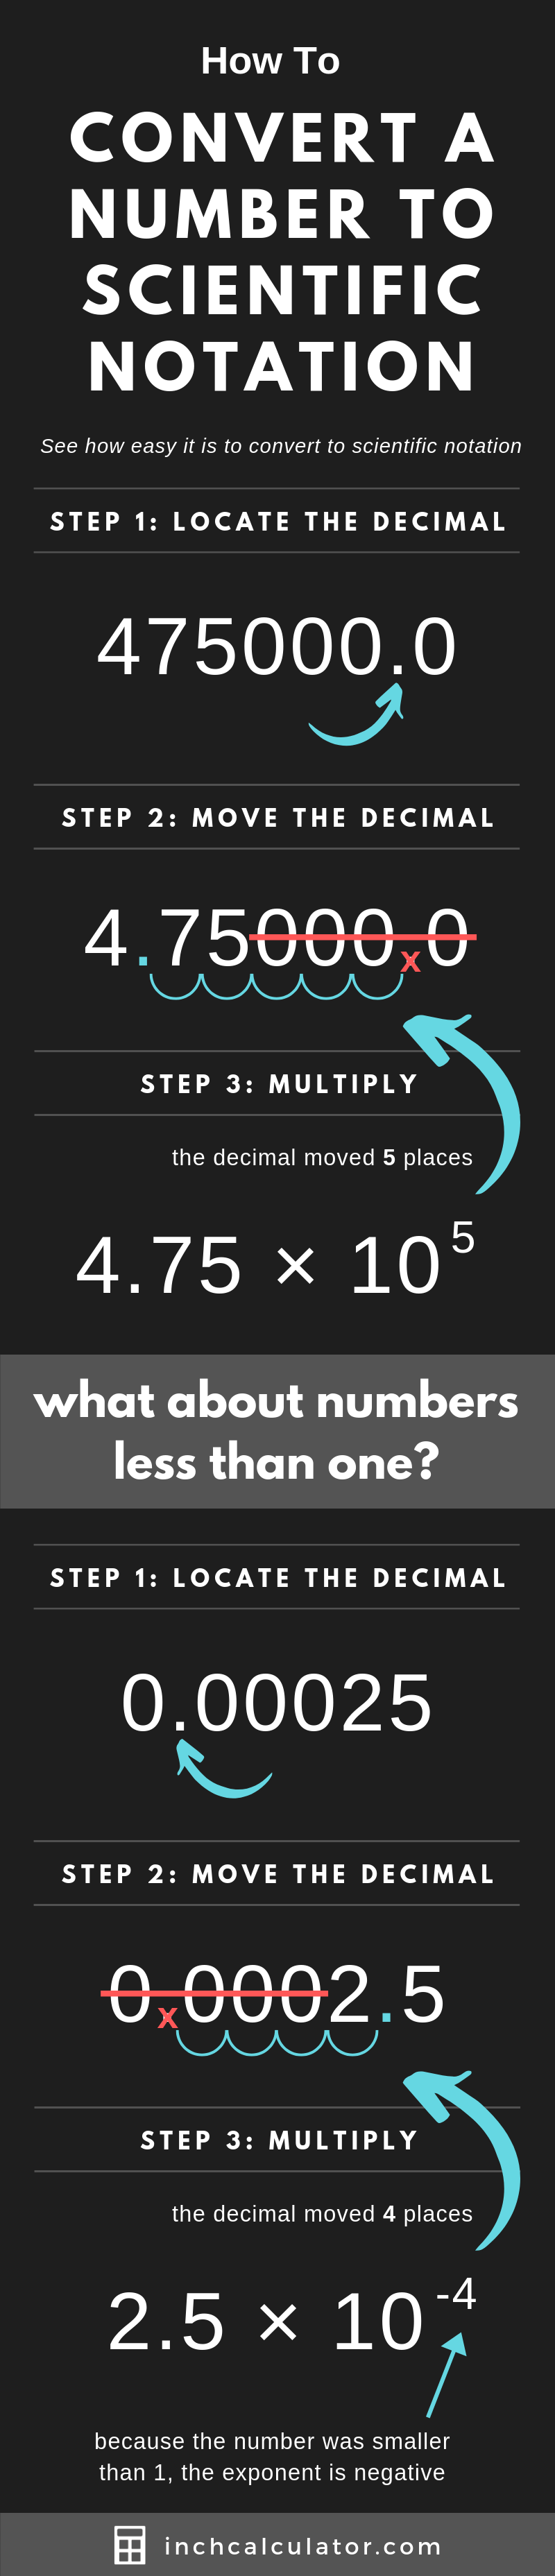 infographic showing how to convert a number into scientific notation